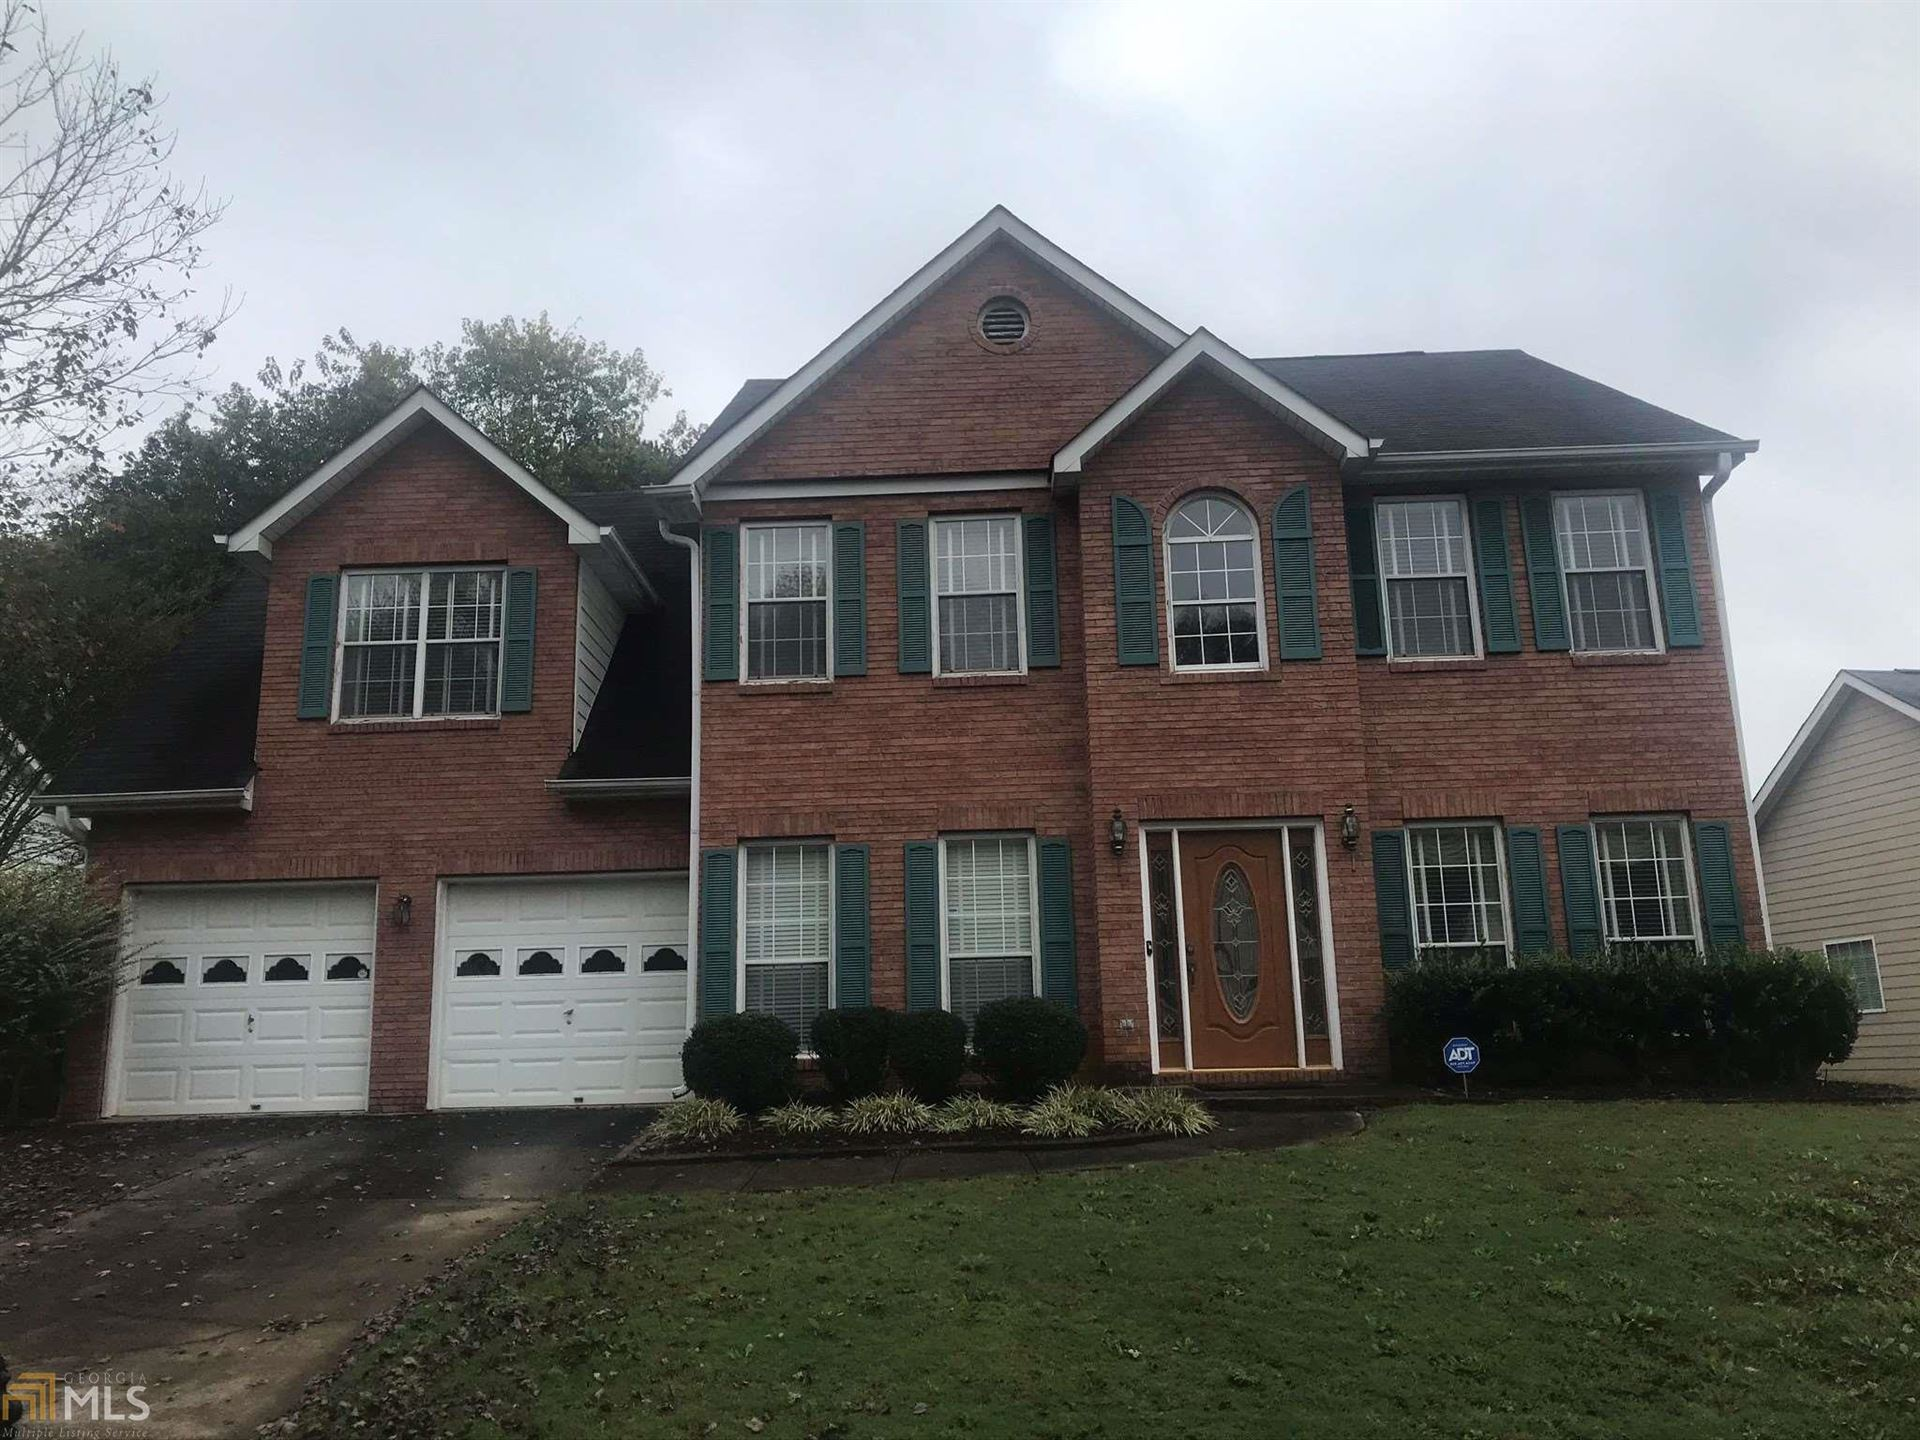 1415 Charter Club Dr, Lawrenceville, GA 30043 - MLS#: 8877480